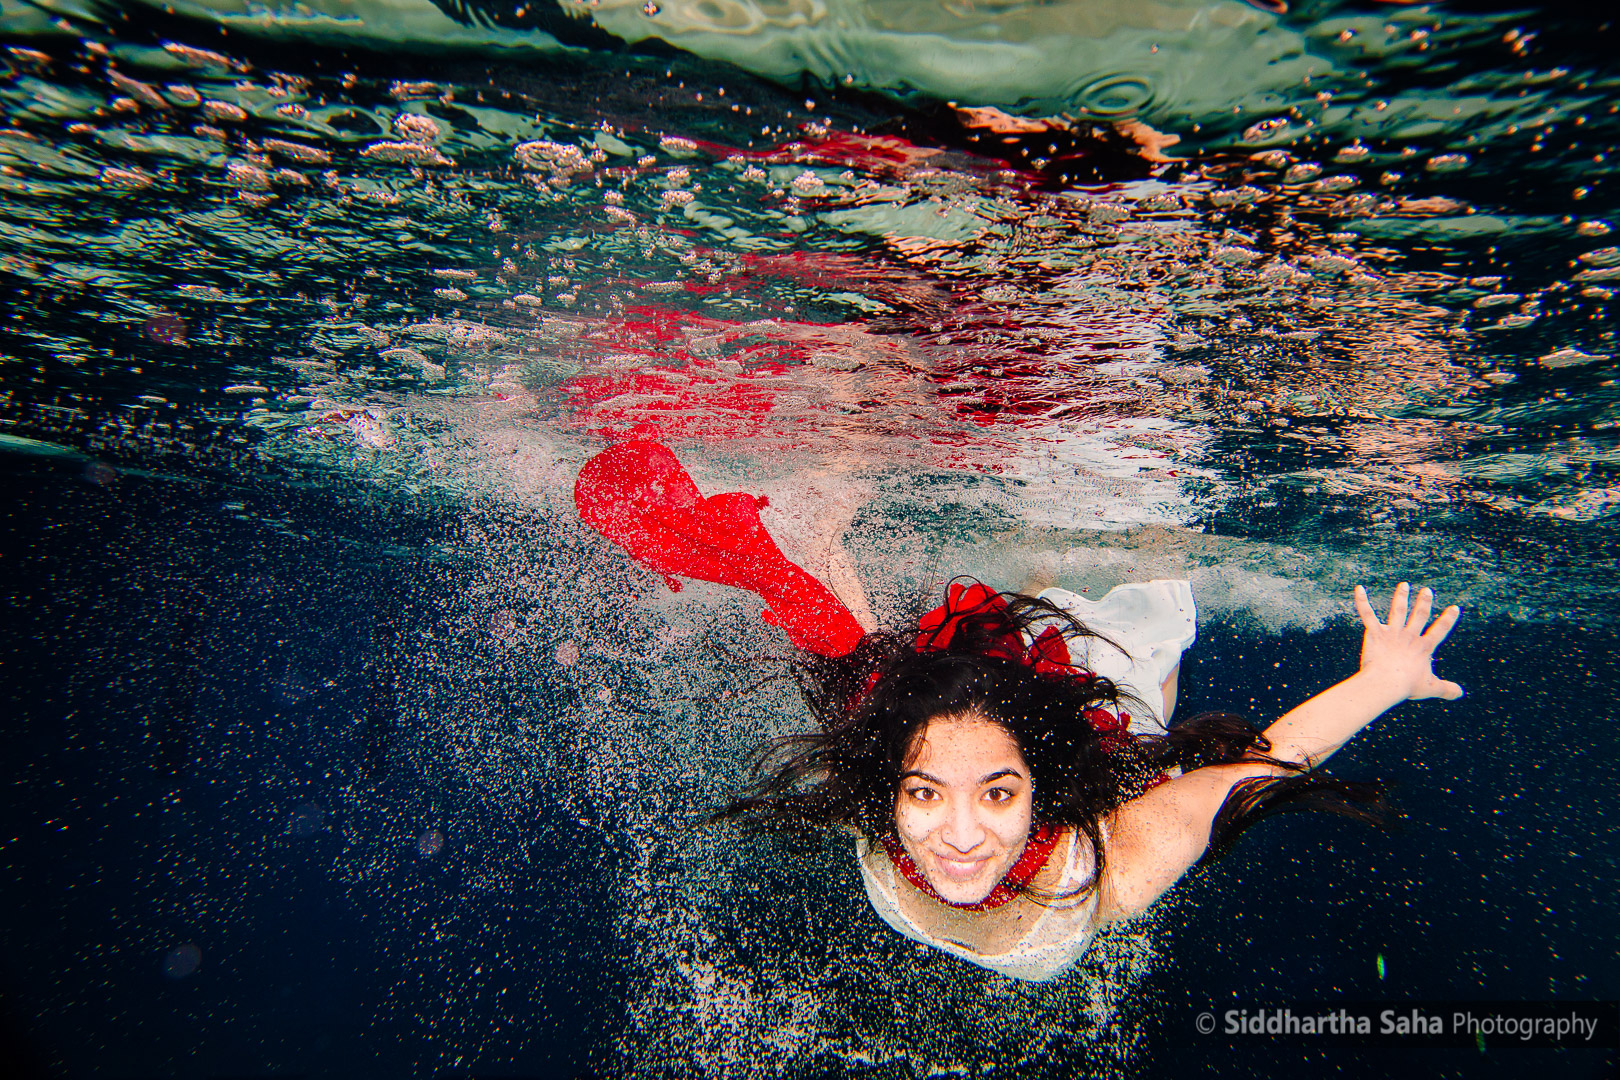 2015-04-12 - Saloni Vaibhav Underwater Shoot - _O5C4711-01-2